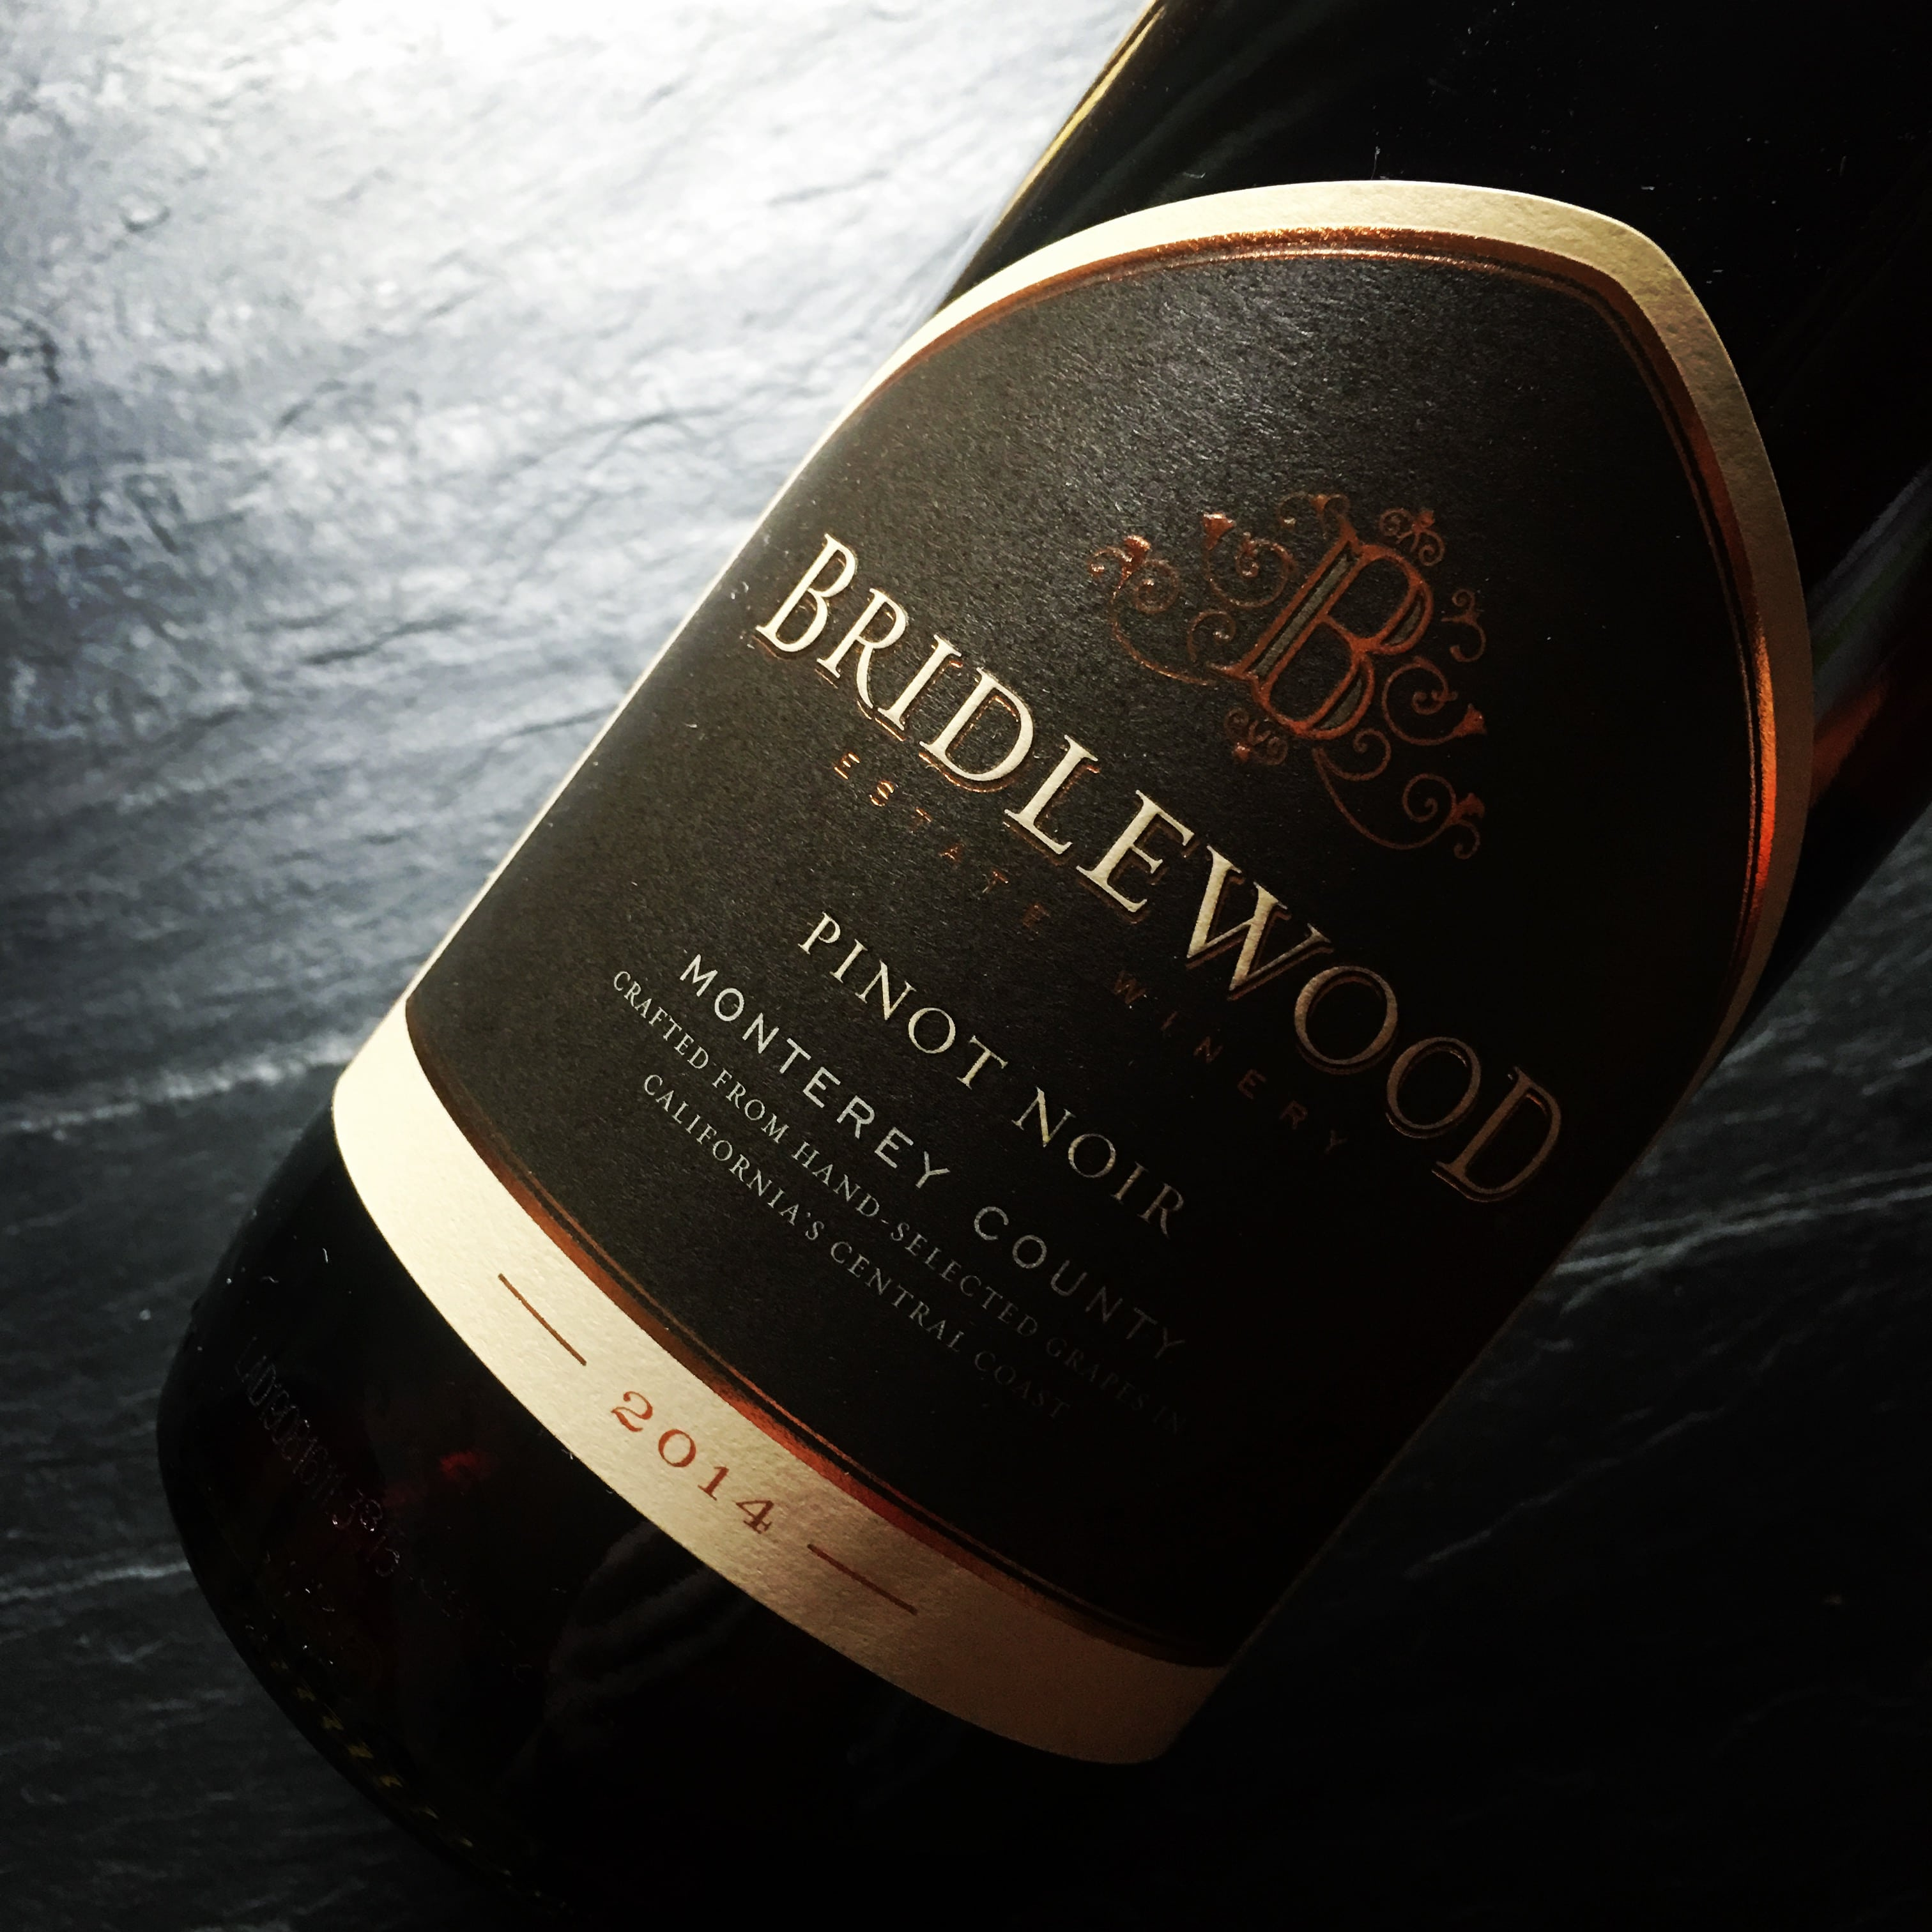 Bridlewood Monterey County Pinot Noir 2014